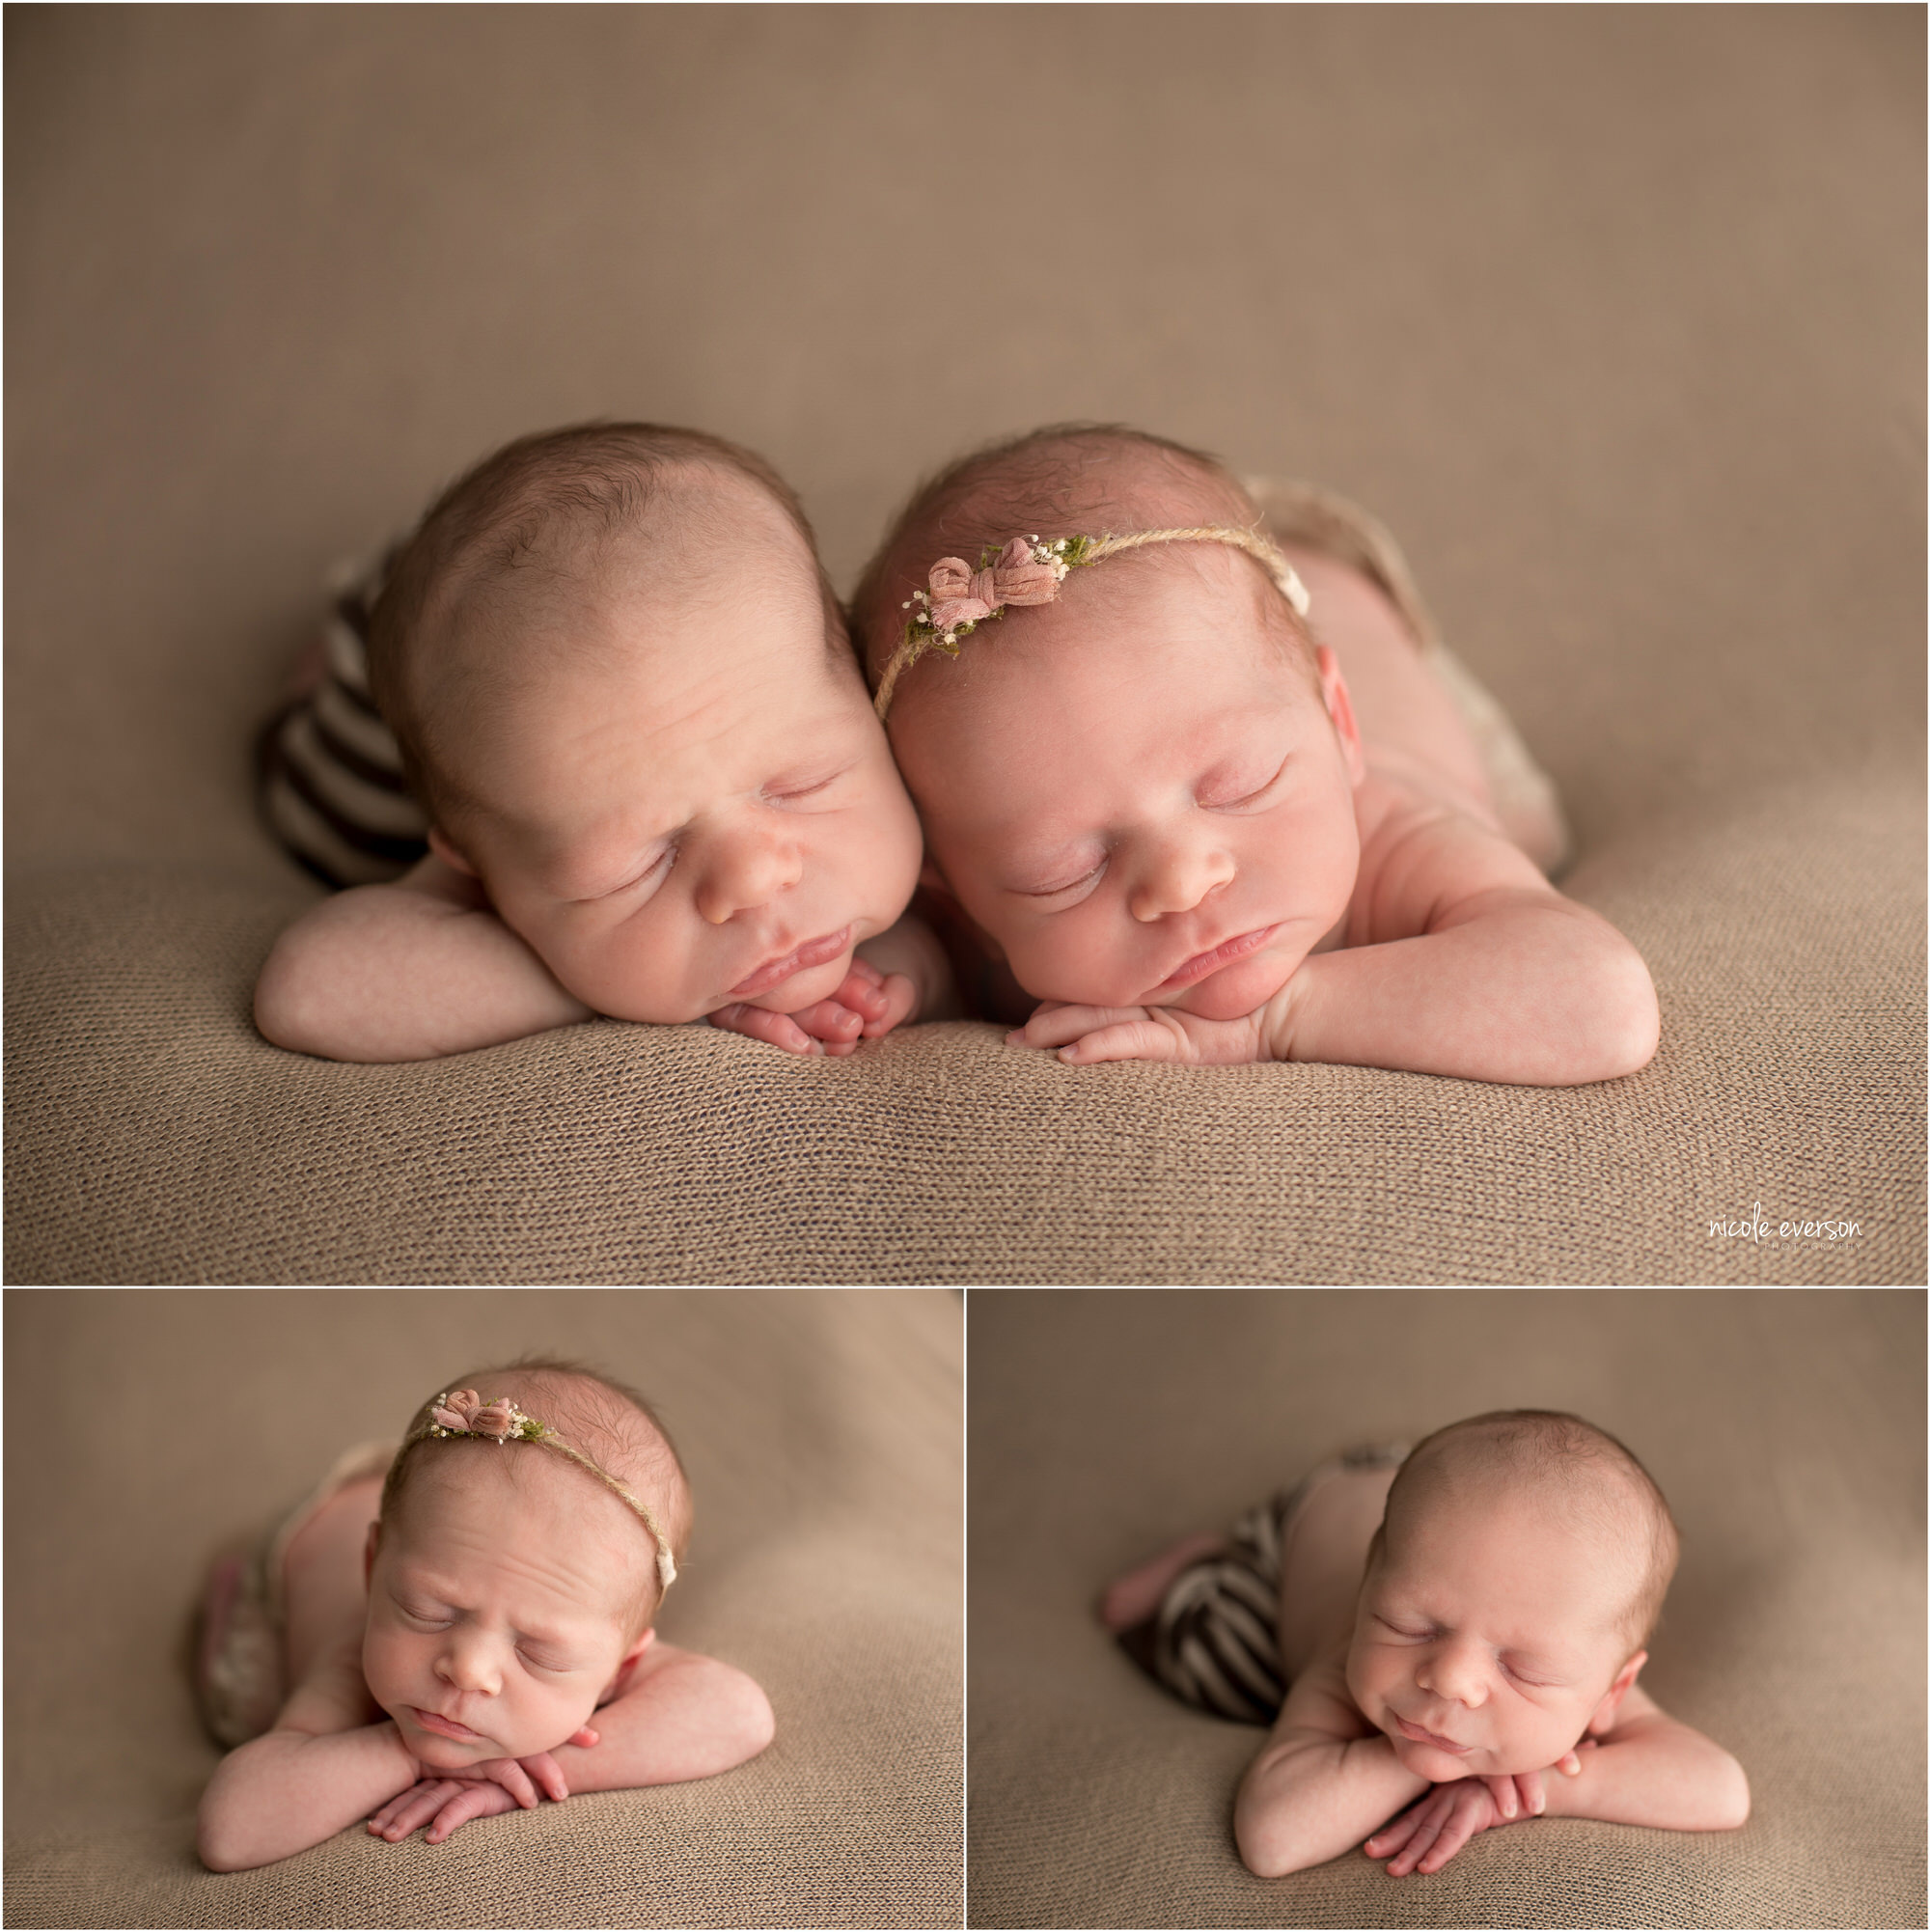 Newborn twins snuggled together at Nicole Everson Photography. Sister is wearing cream-colored lace pants and a pink flower headband. Brother is wearing brown and cream striped pants.